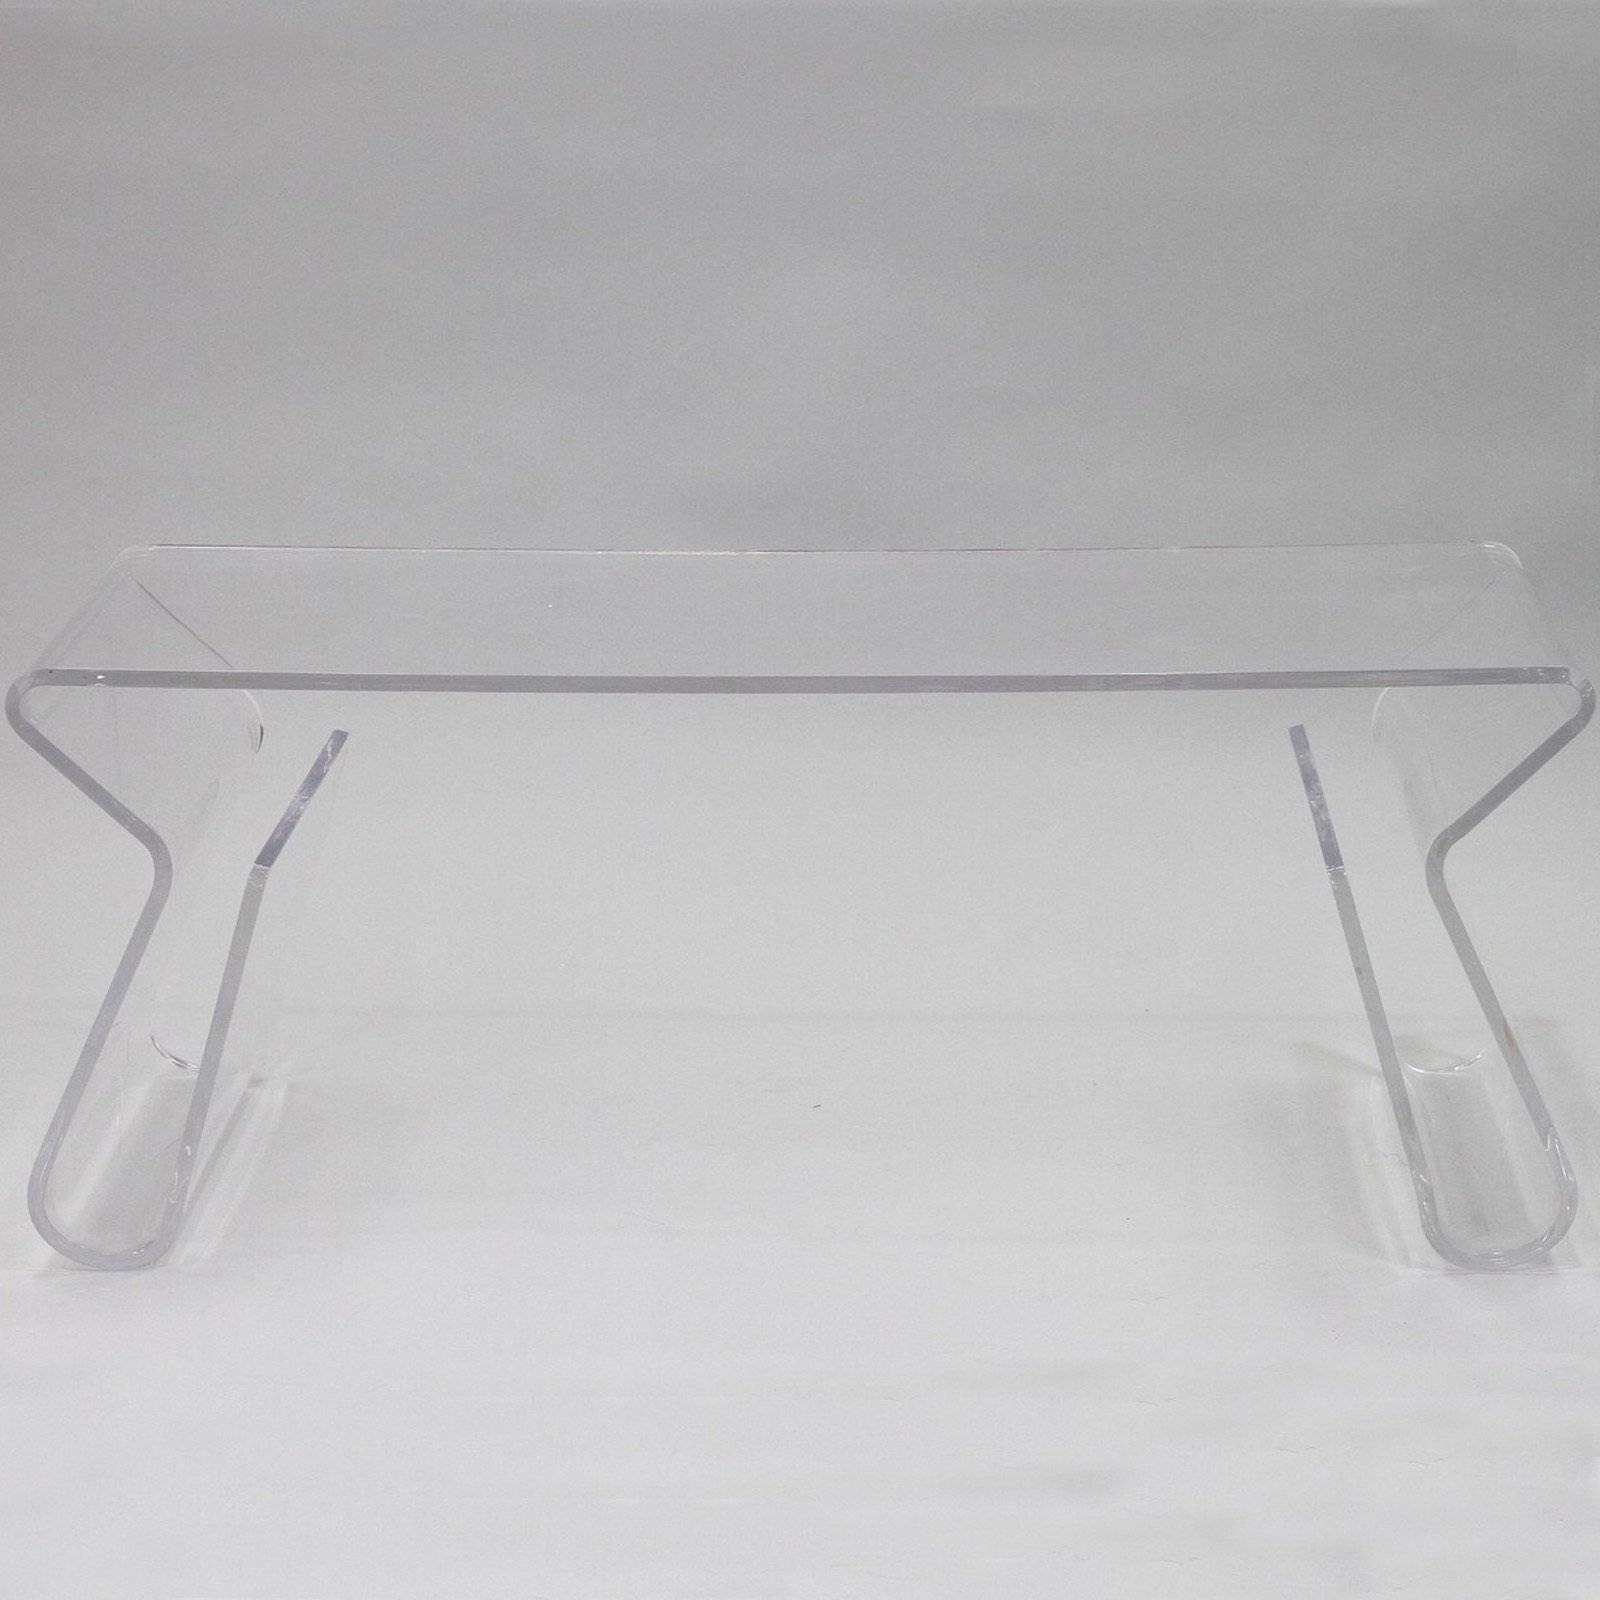 Clear Rectangle Acrylic Coffee Table With Magazine Holder In Legs for Acrylic Coffee Tables With Magazine Rack (Image 11 of 30)